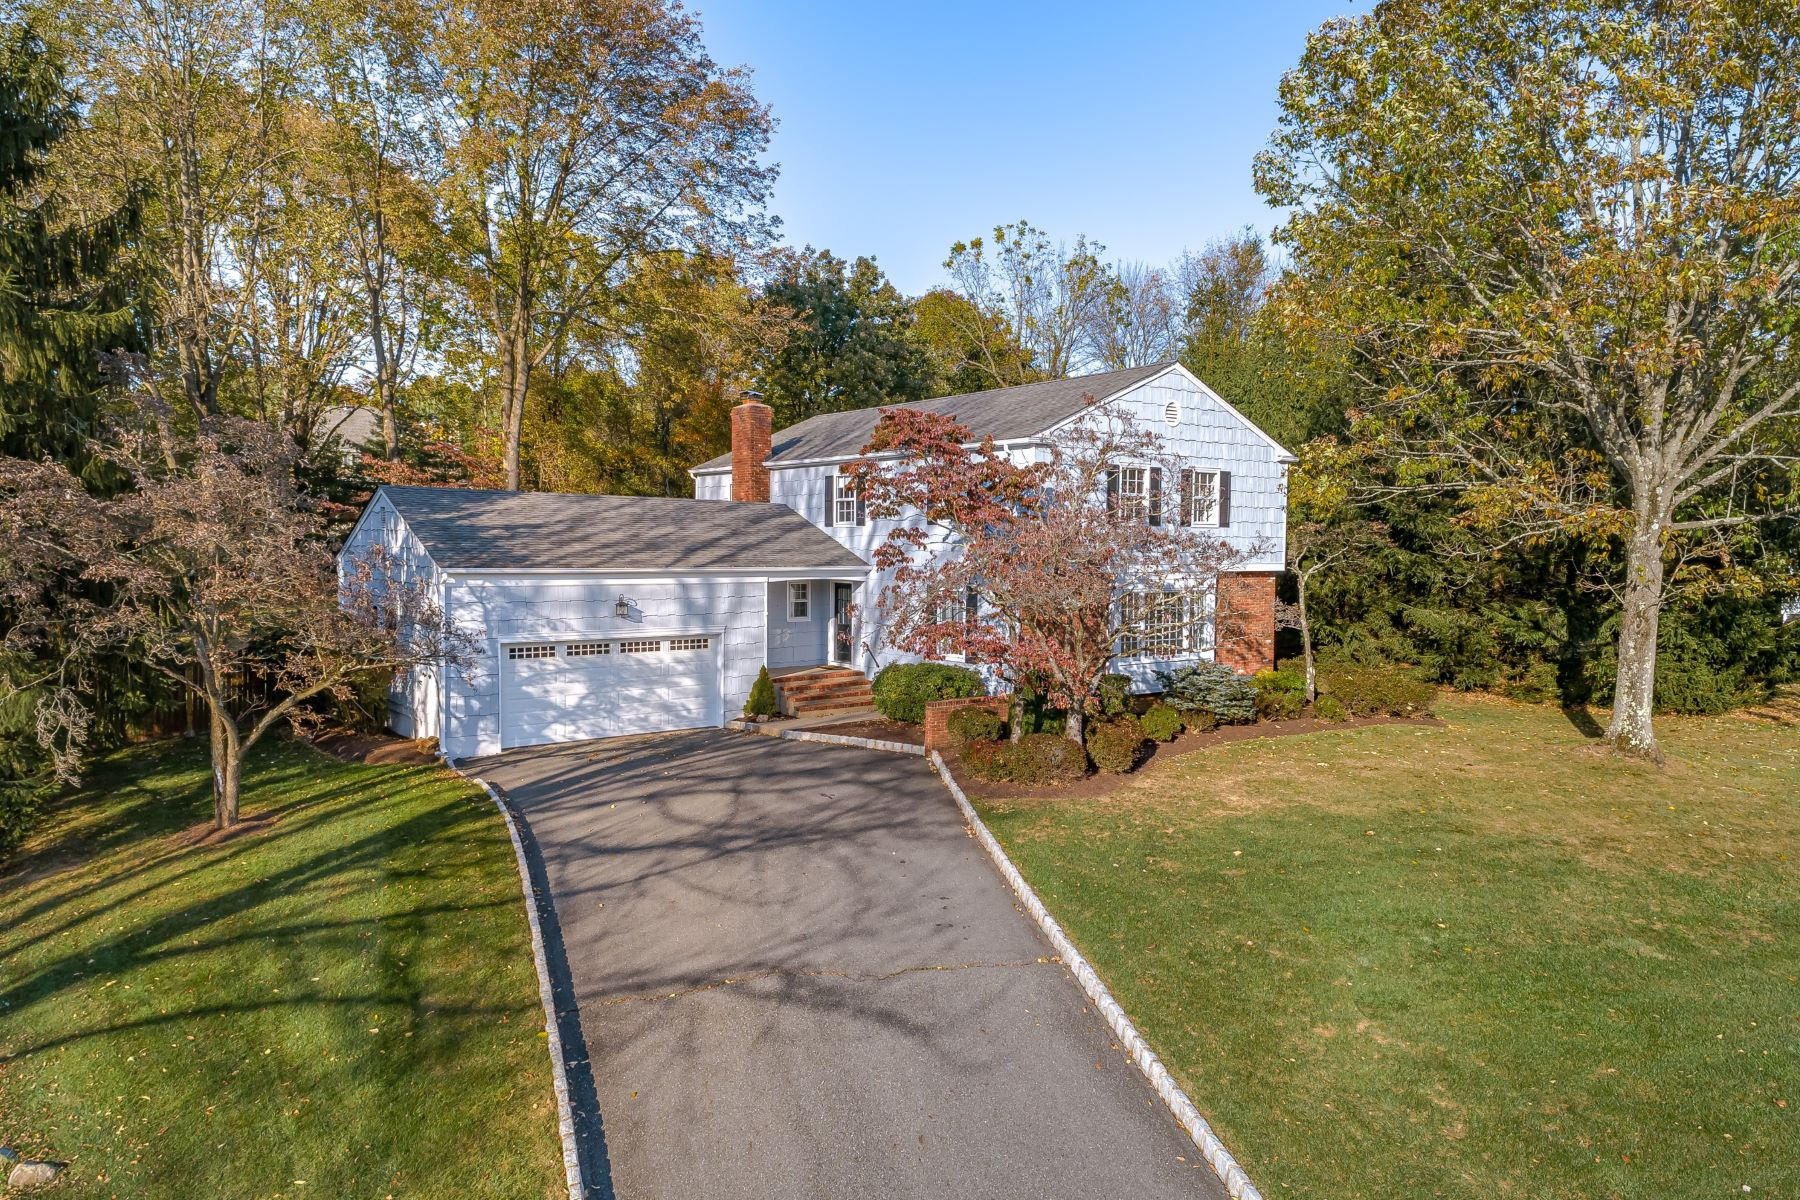 Single Family Homes for Active at Exceptional location and beautifully maintained 15 Heather Hill Way Mendham Borough, New Jersey 07945 United States